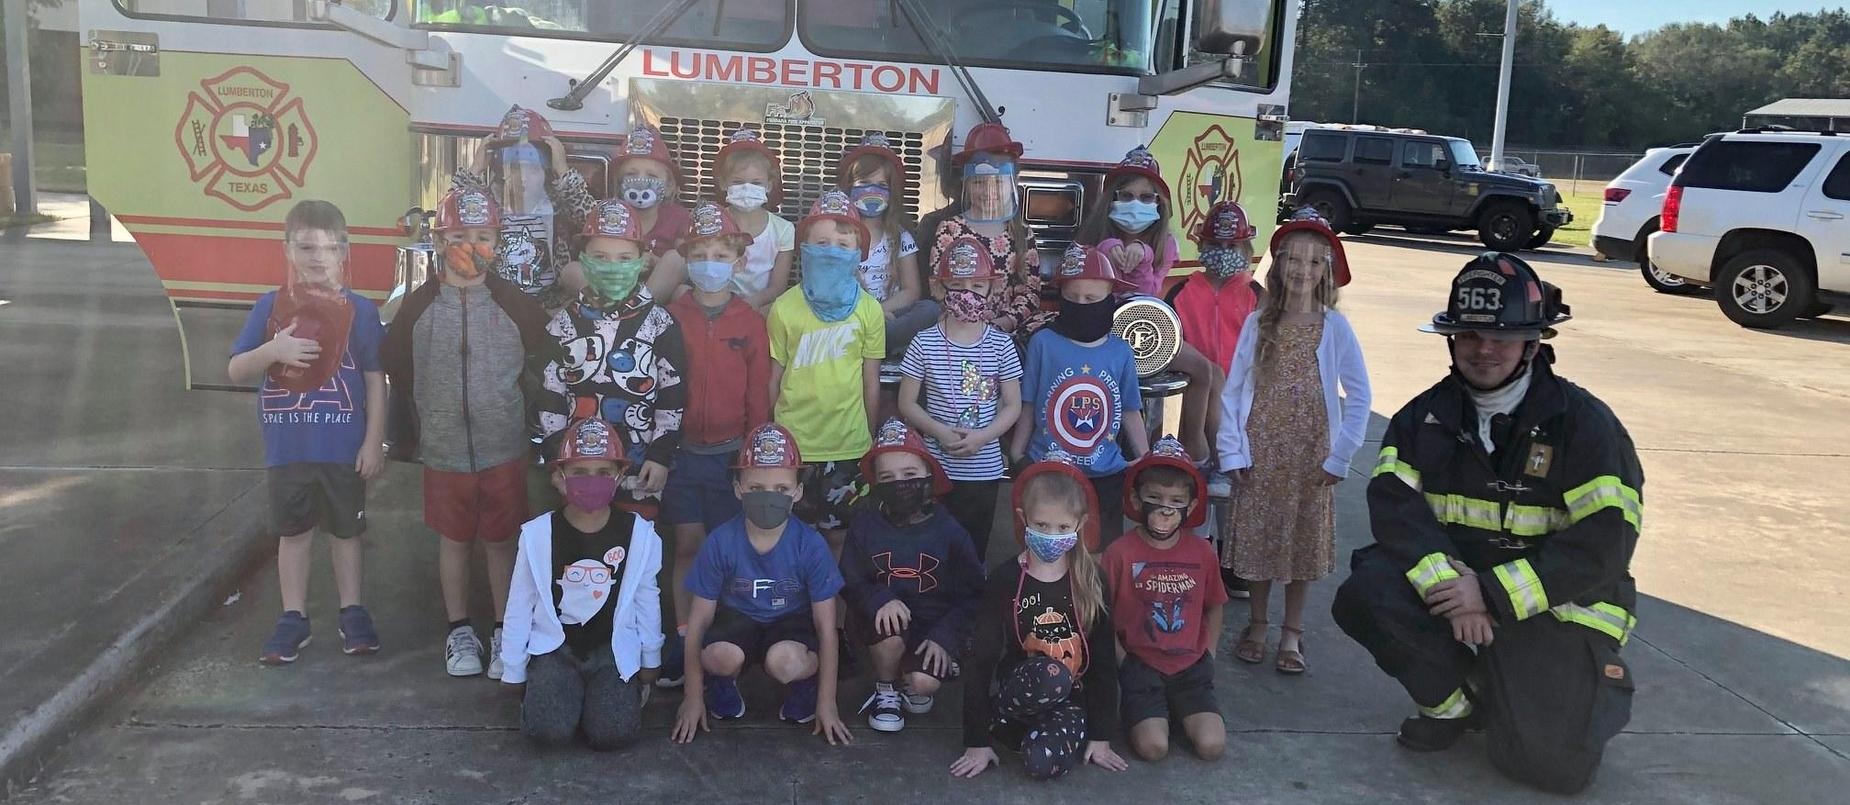 LPS Fire Safety